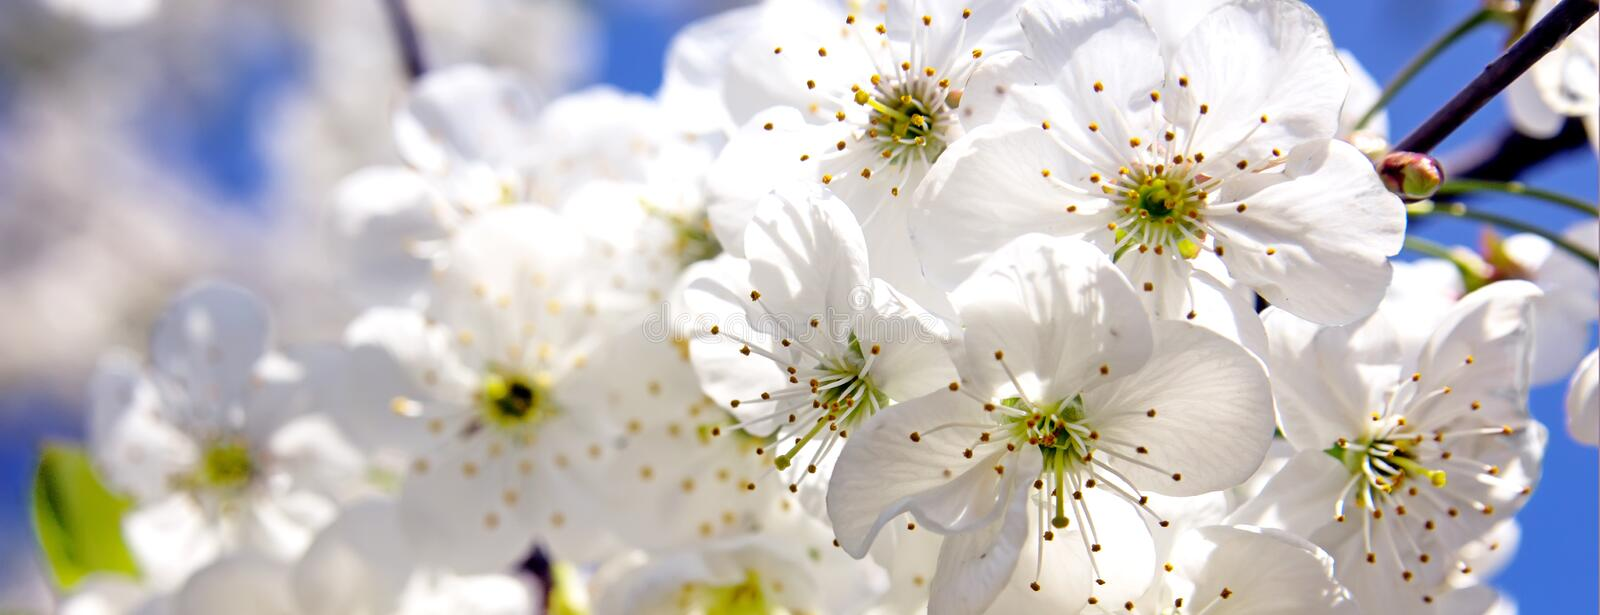 Blossoming of the cherry tree in spring time with white beautiful flowers. Macro image with copy space. Natural seasonal. Background. Selective focus. Banner stock image